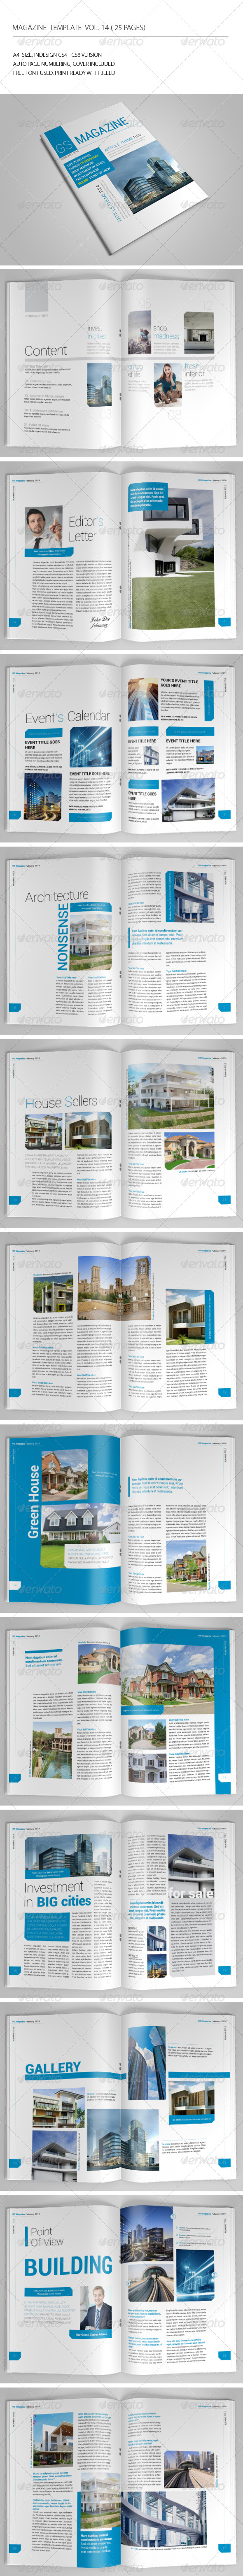 25 Pages Magazine Template Vol14 - Magazines Print Templates